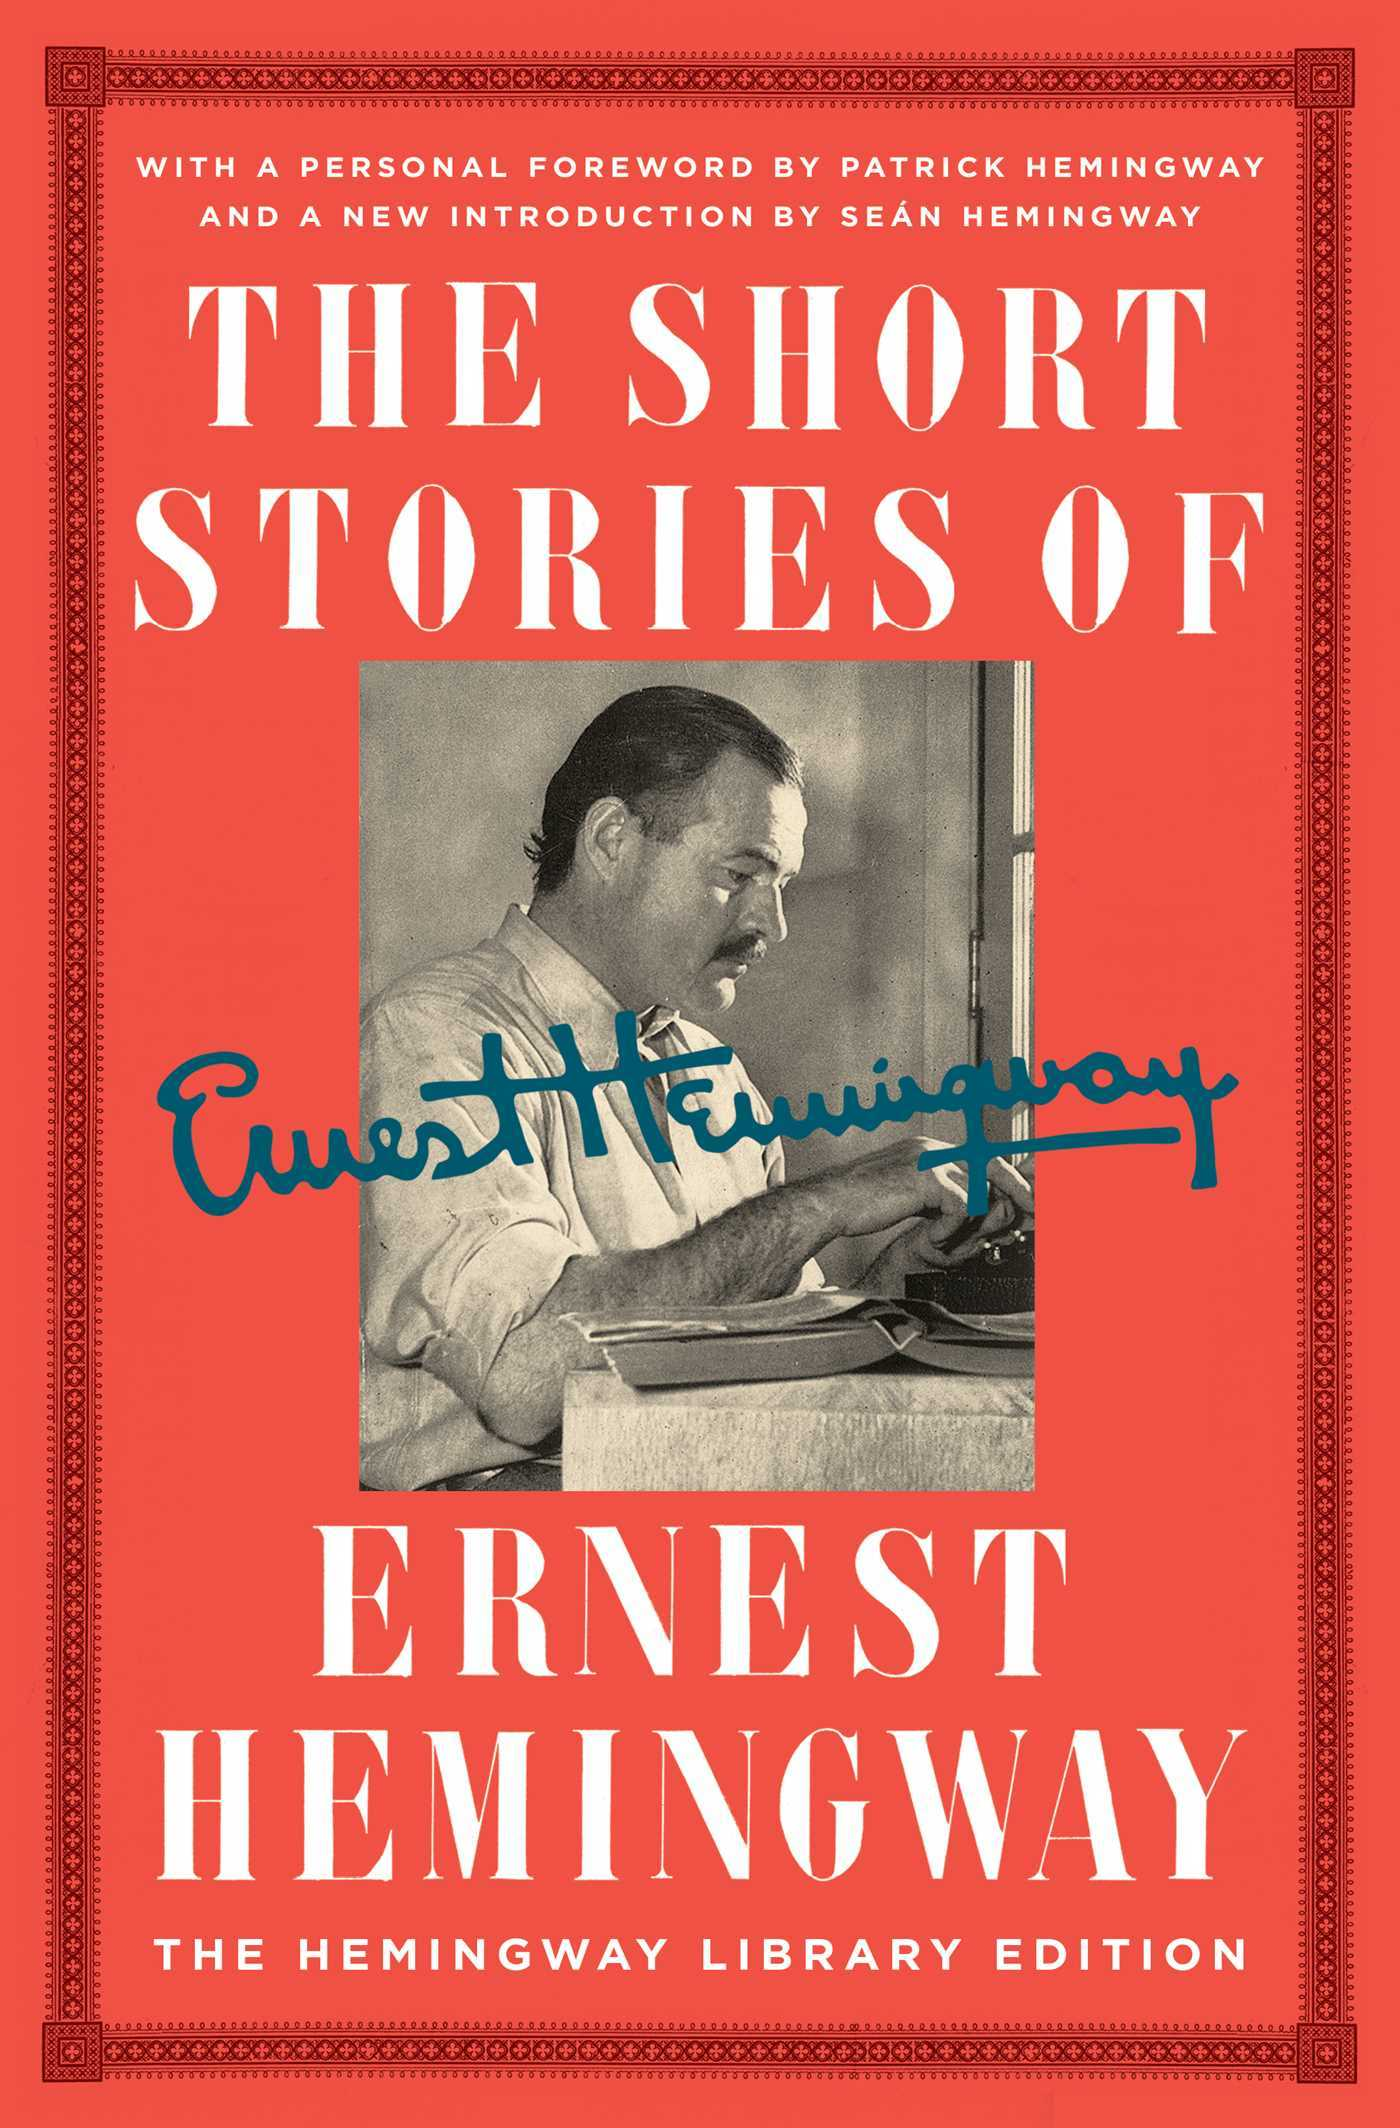 The Short Stories of Ernest Hemingway: The Hemingway Library Edition